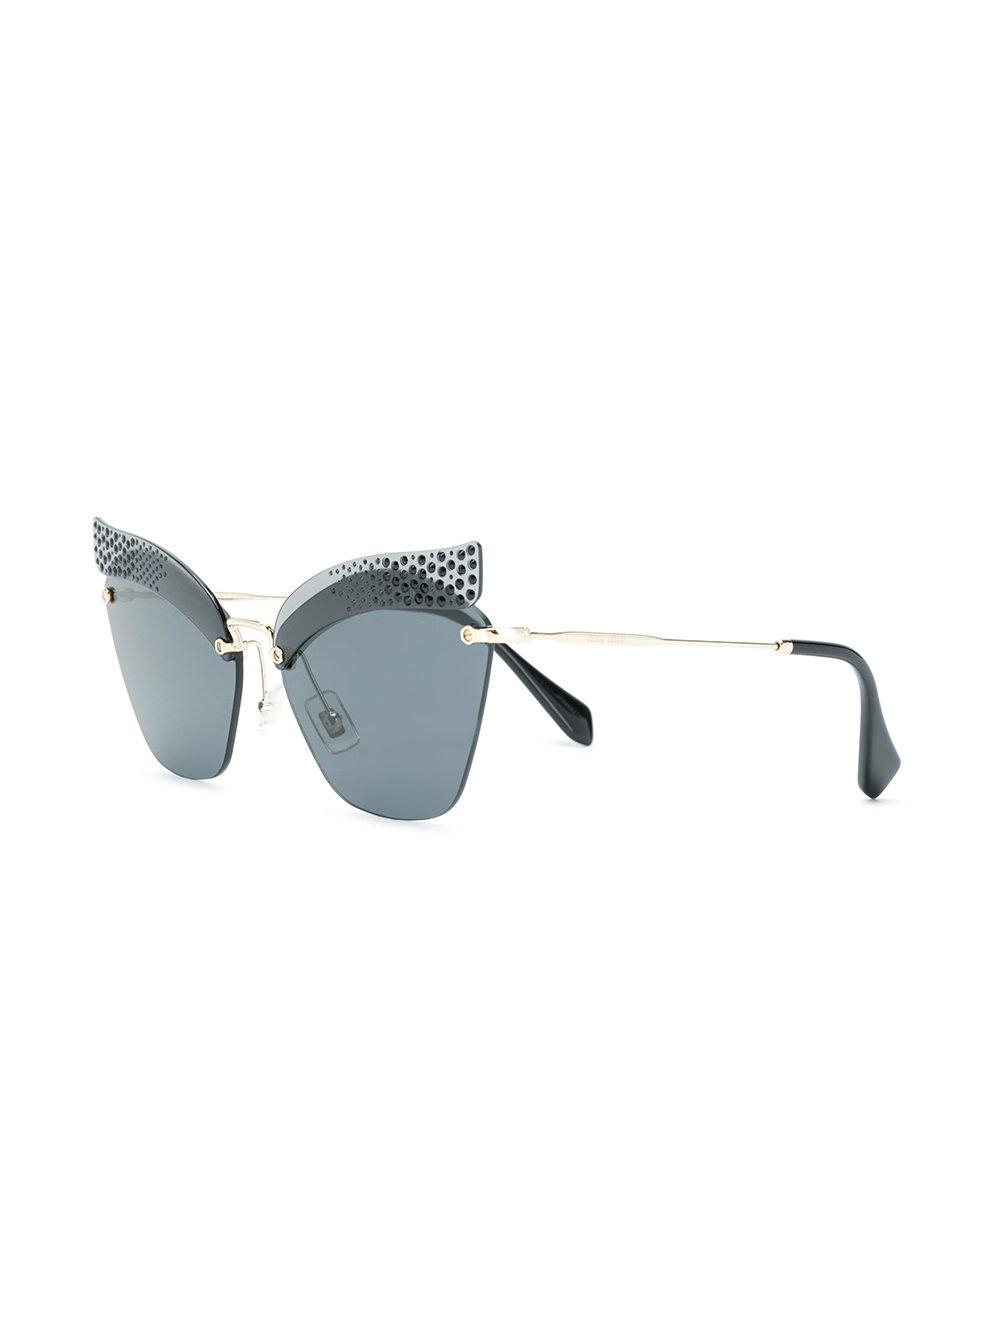 ecf4c1a30ac Miu Miu Embellished Cat Eye Sunglasses in Black - Lyst